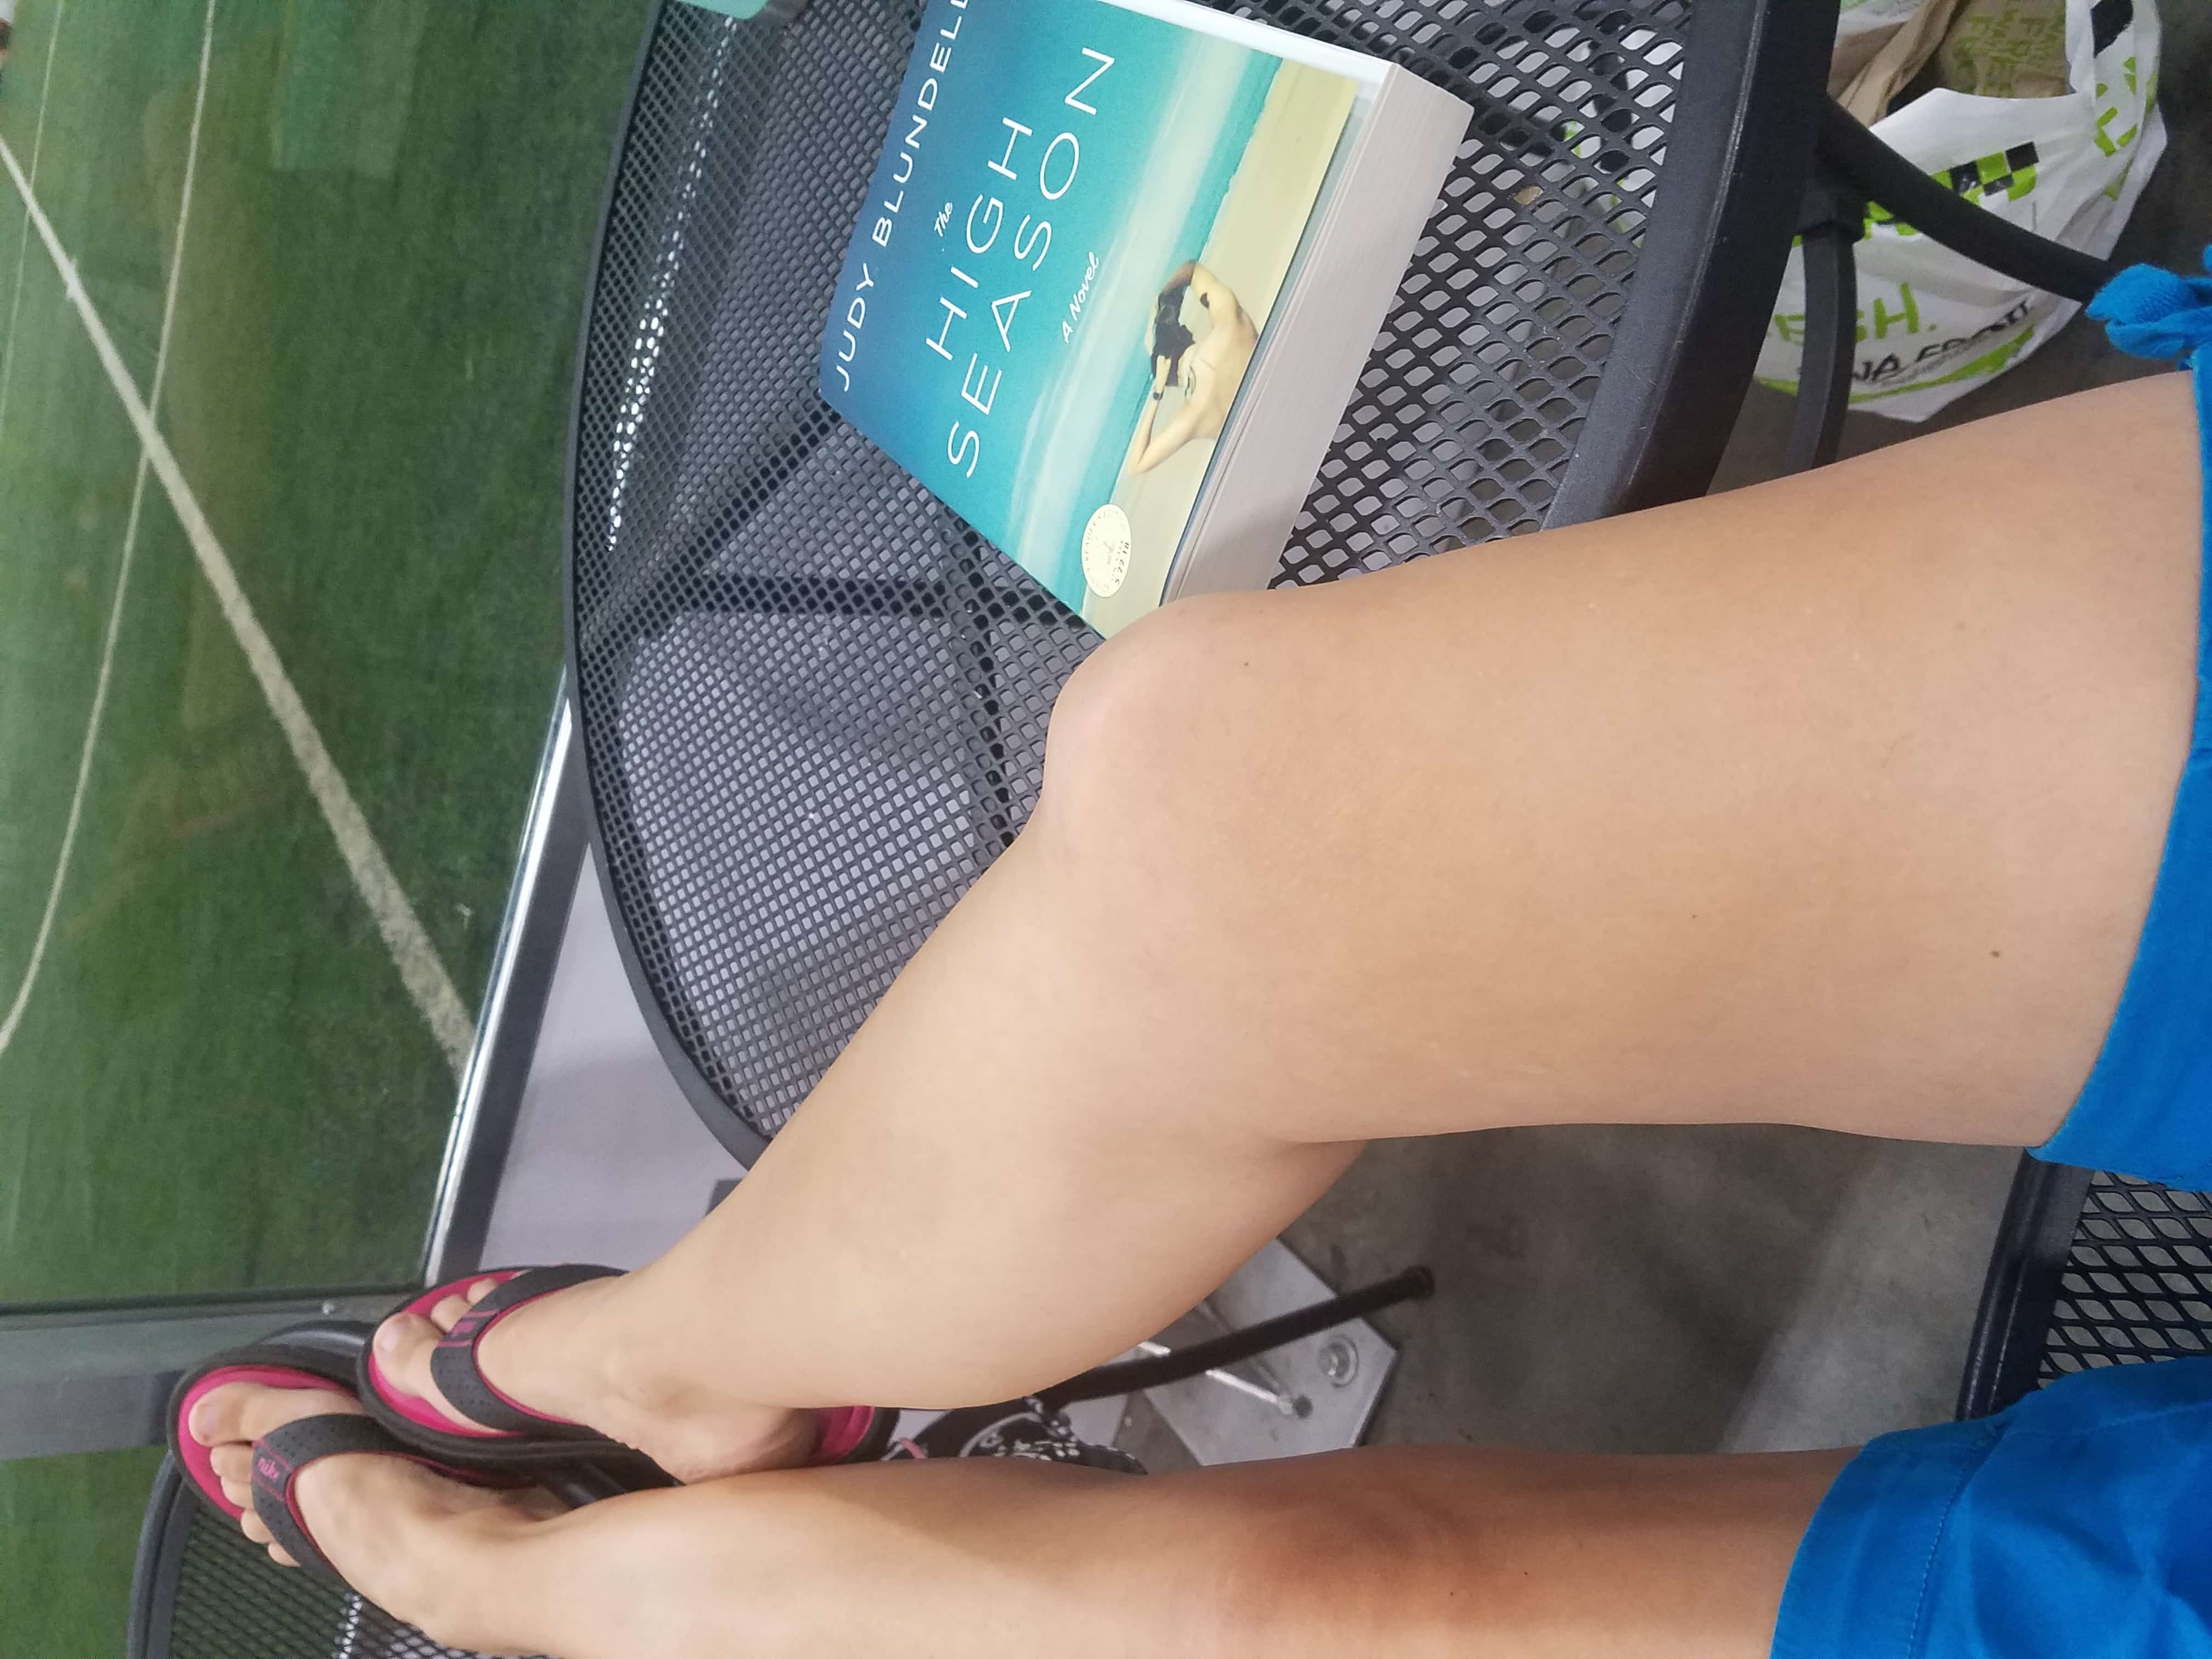 2018 Catch the Moment 365 Week 30 - Day 205 - Reading at Soccer